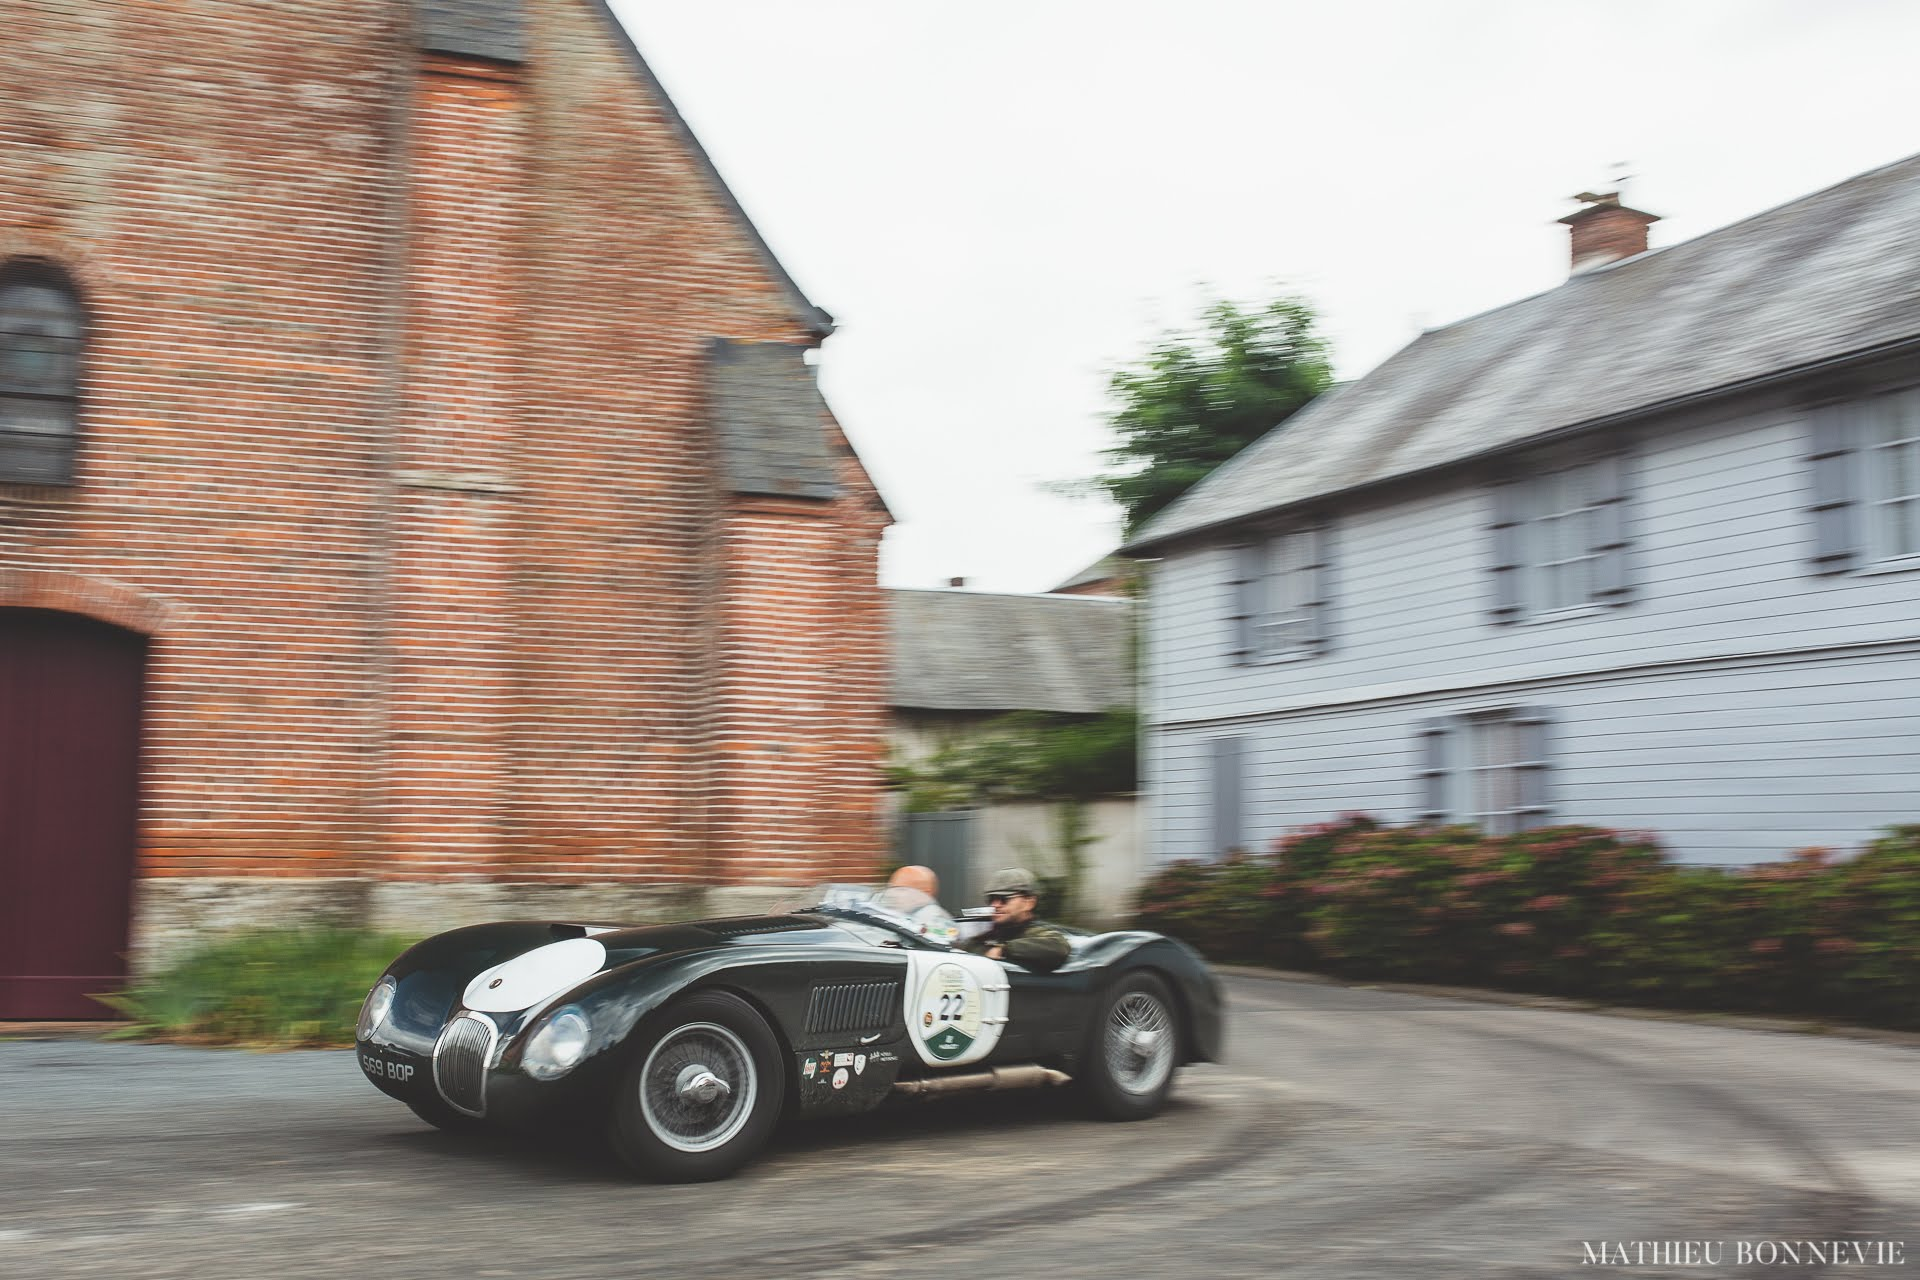 168-goodwoodrevival18-01030-copyright-Mathieu-Bonnevie-1920